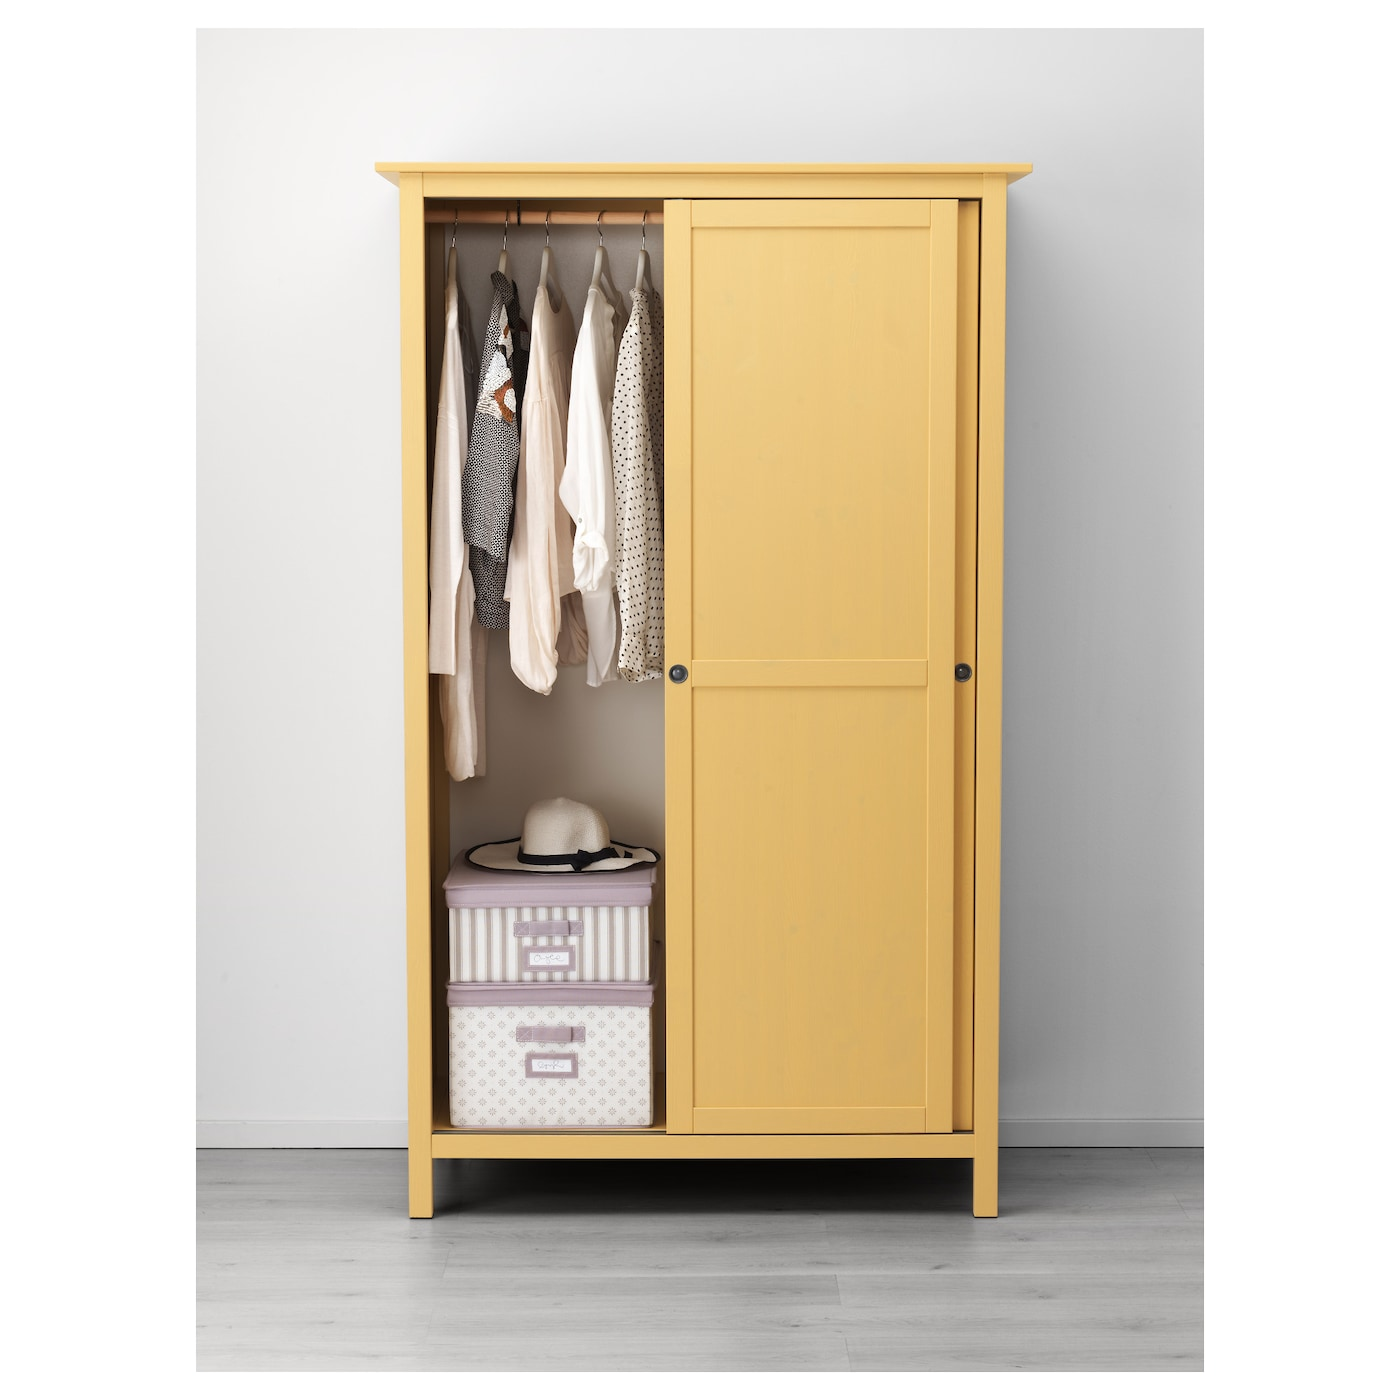 hemnes armoire 2 portes coulissantes jaune 120 x 197 cm ikea. Black Bedroom Furniture Sets. Home Design Ideas